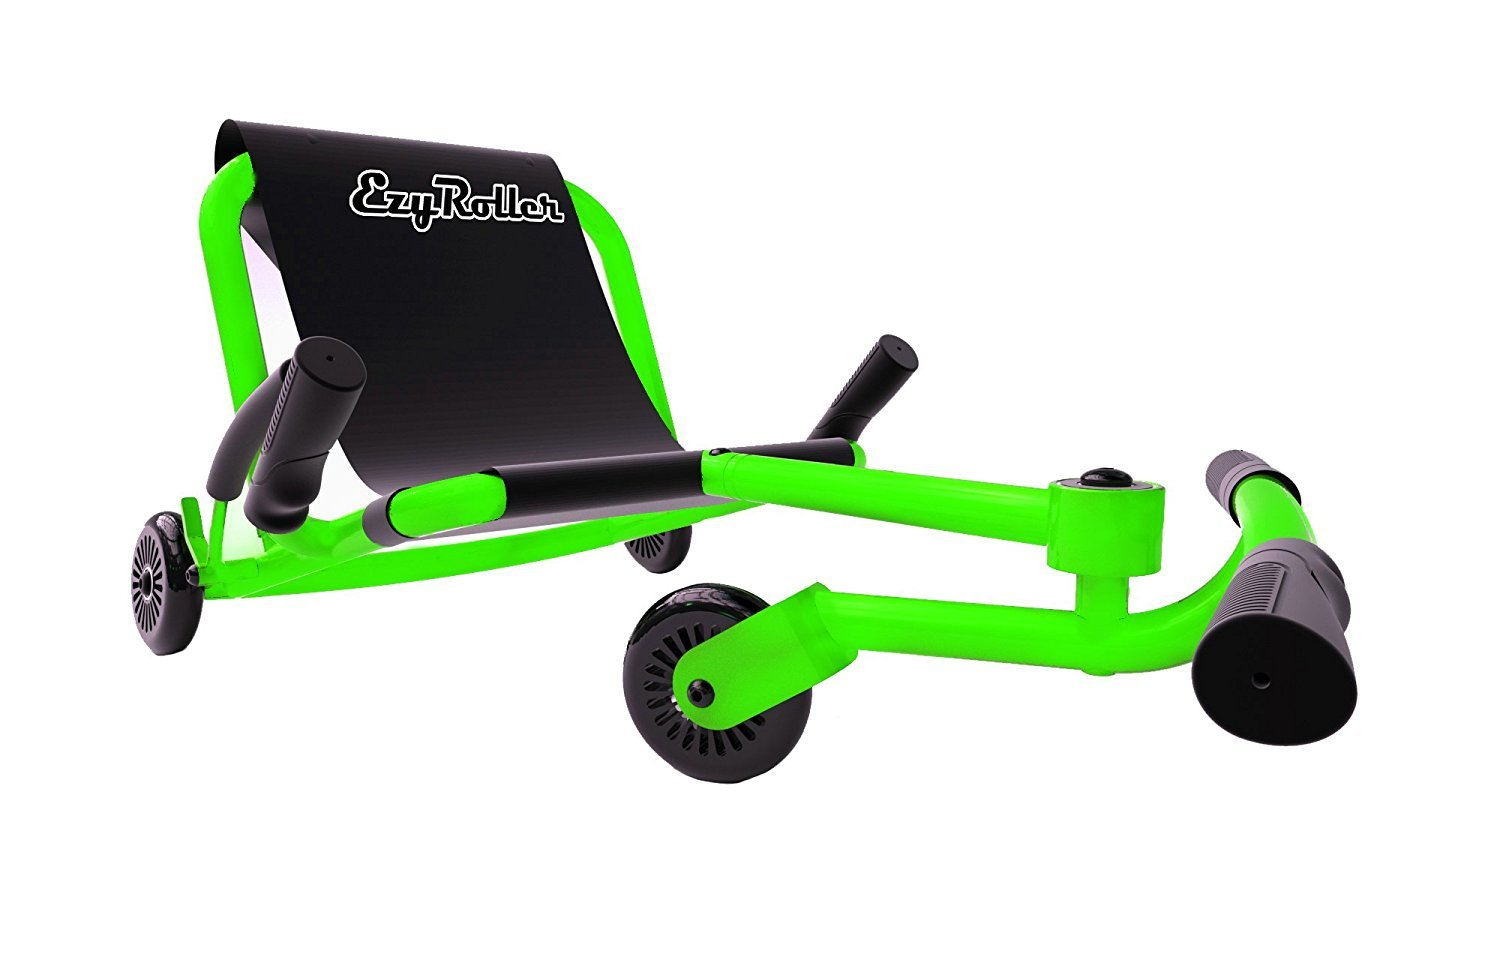 EzyRoller Ride On Toy - New Twist On A Classic Scooter - Neon Green